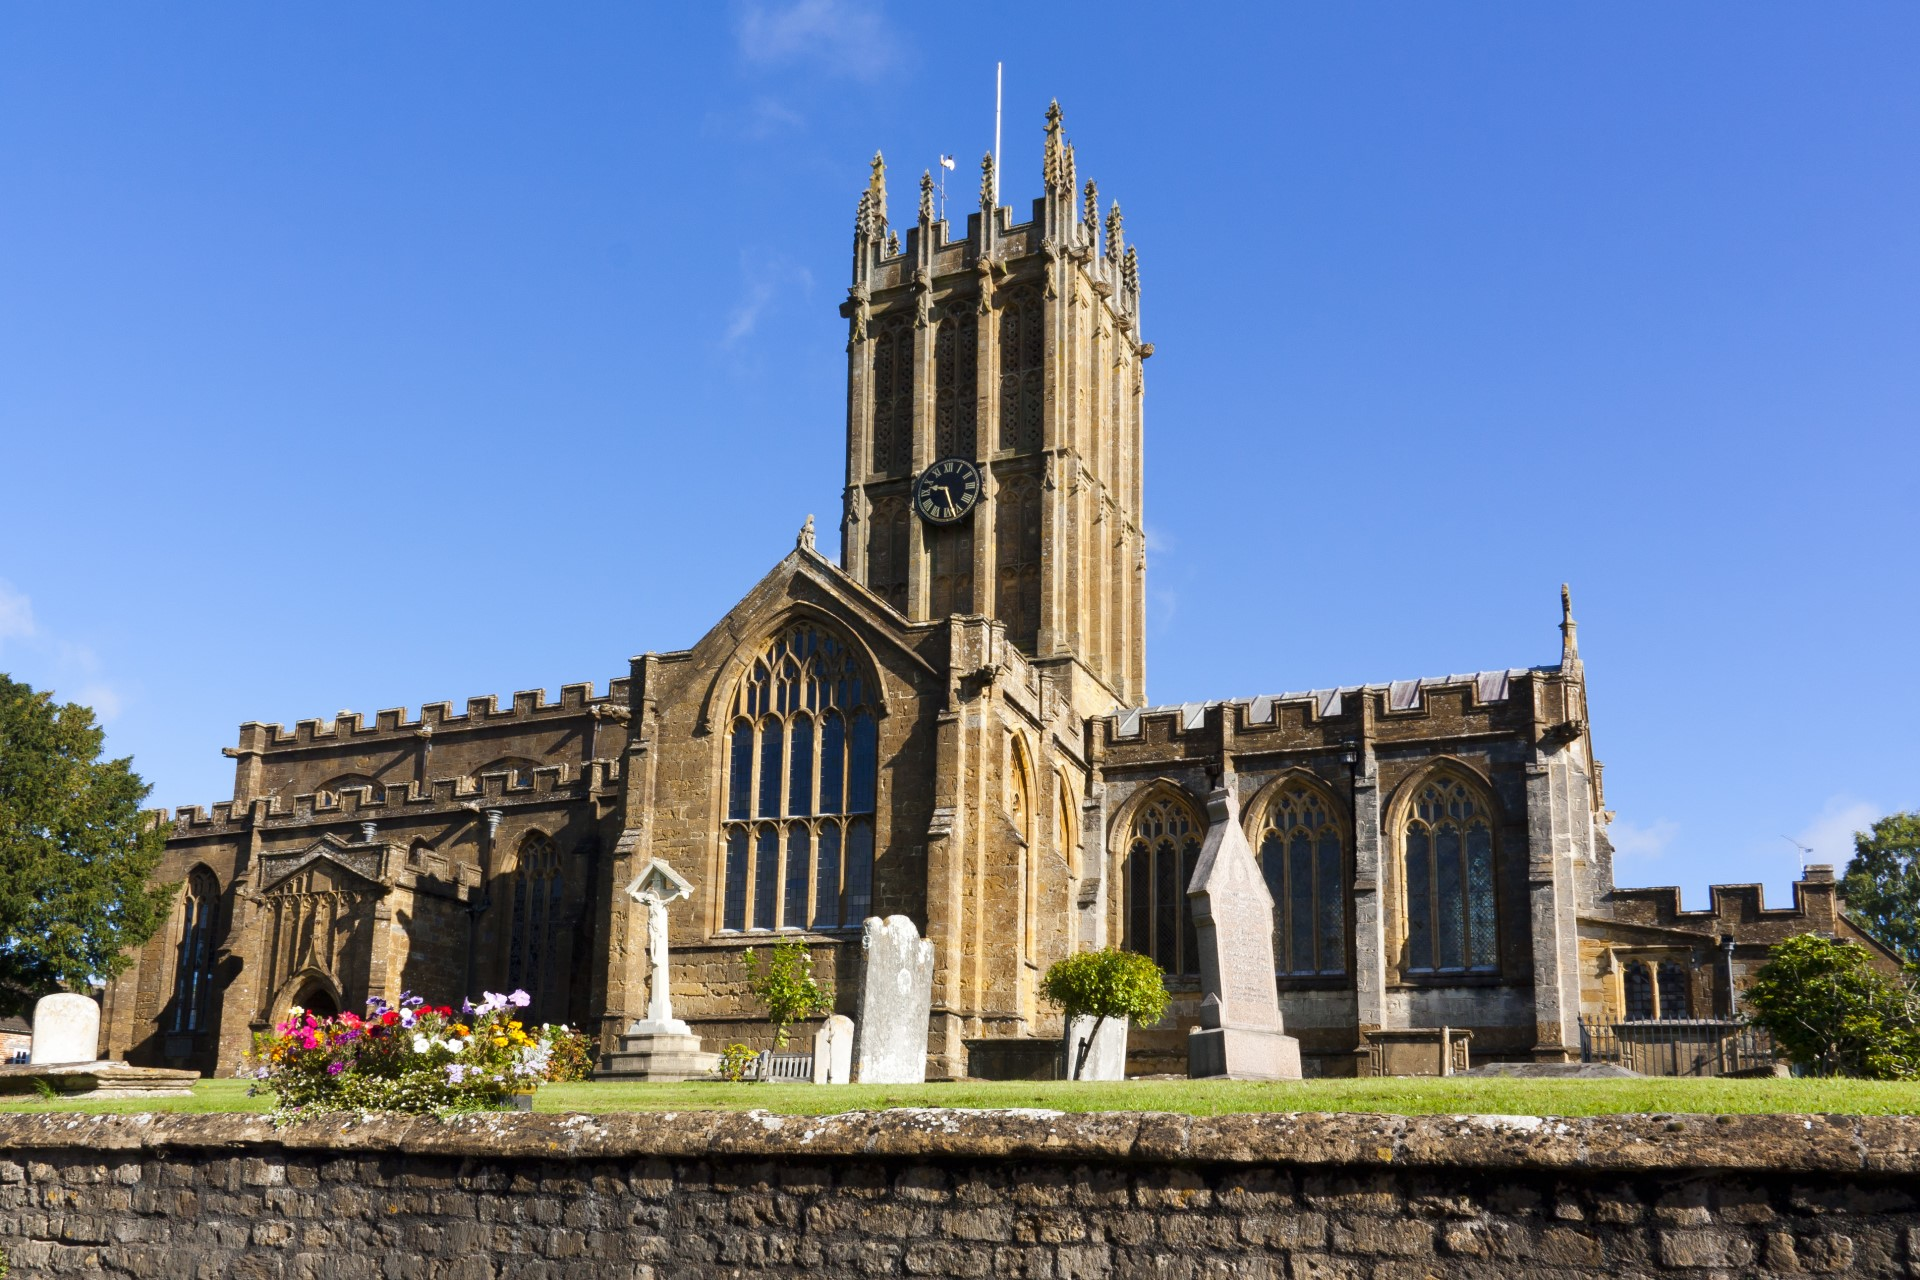 Ilminster town church in West Somerset